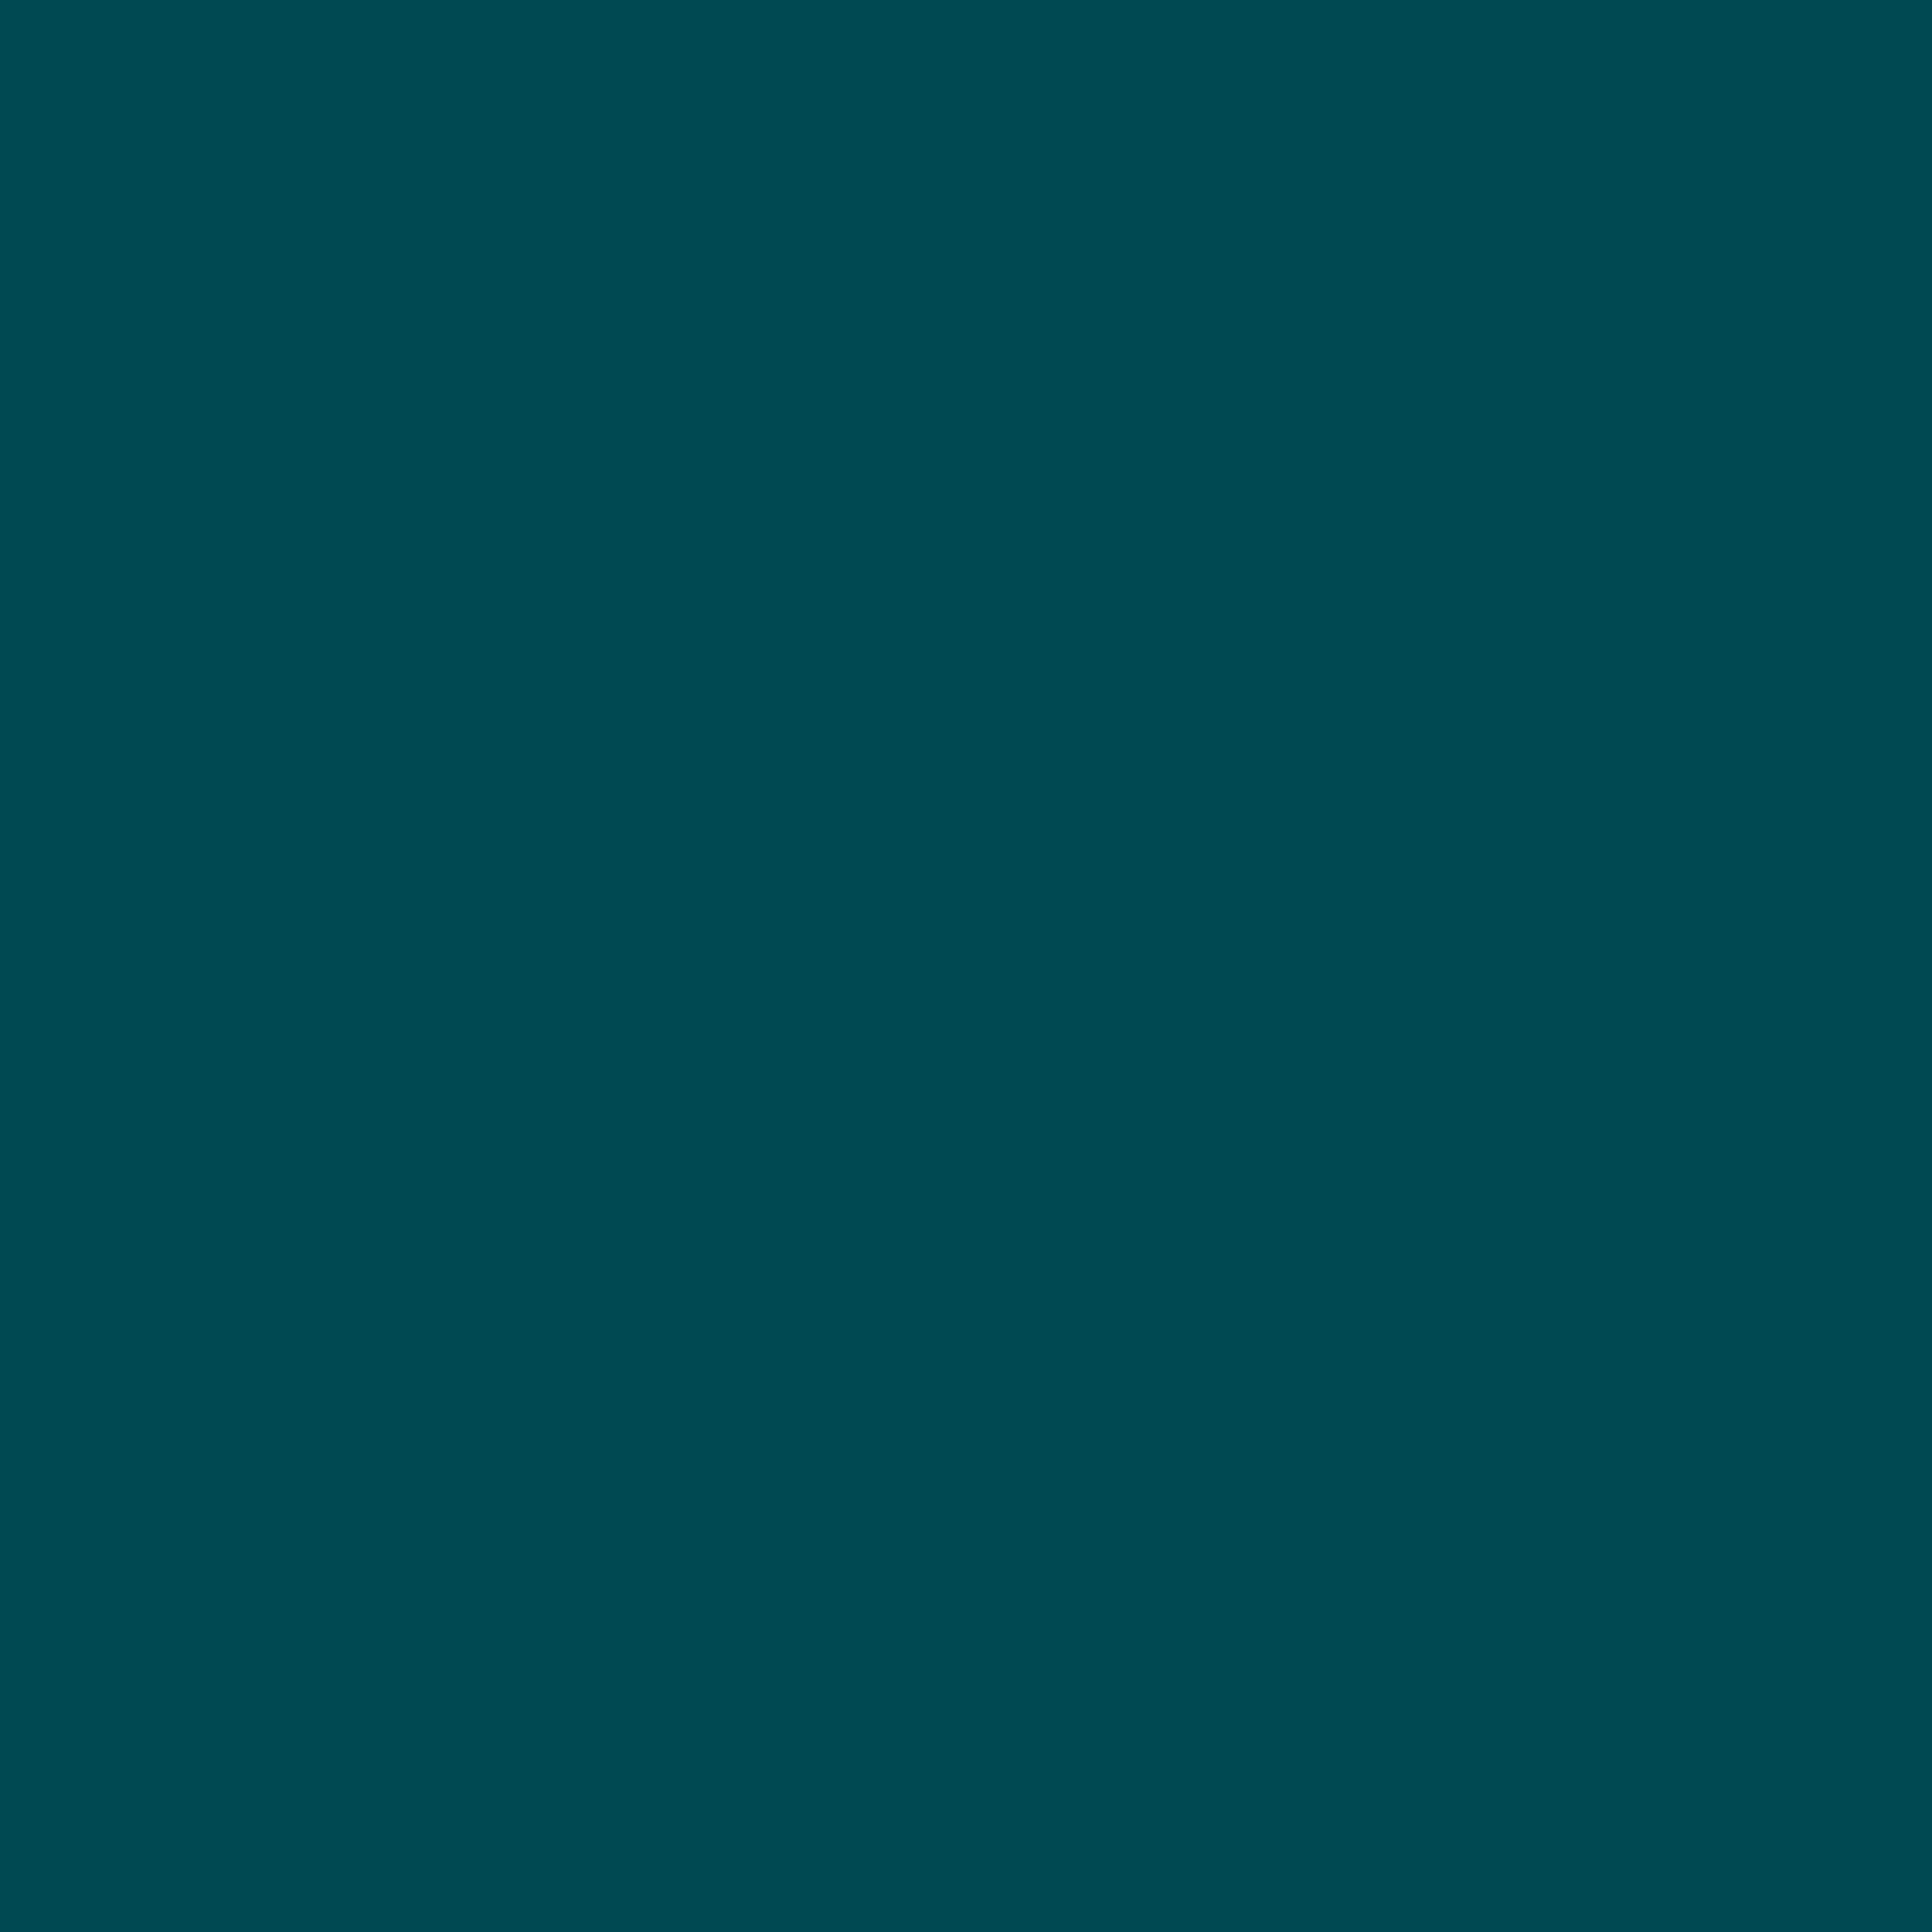 2048x2048 Midnight Green Solid Color Background